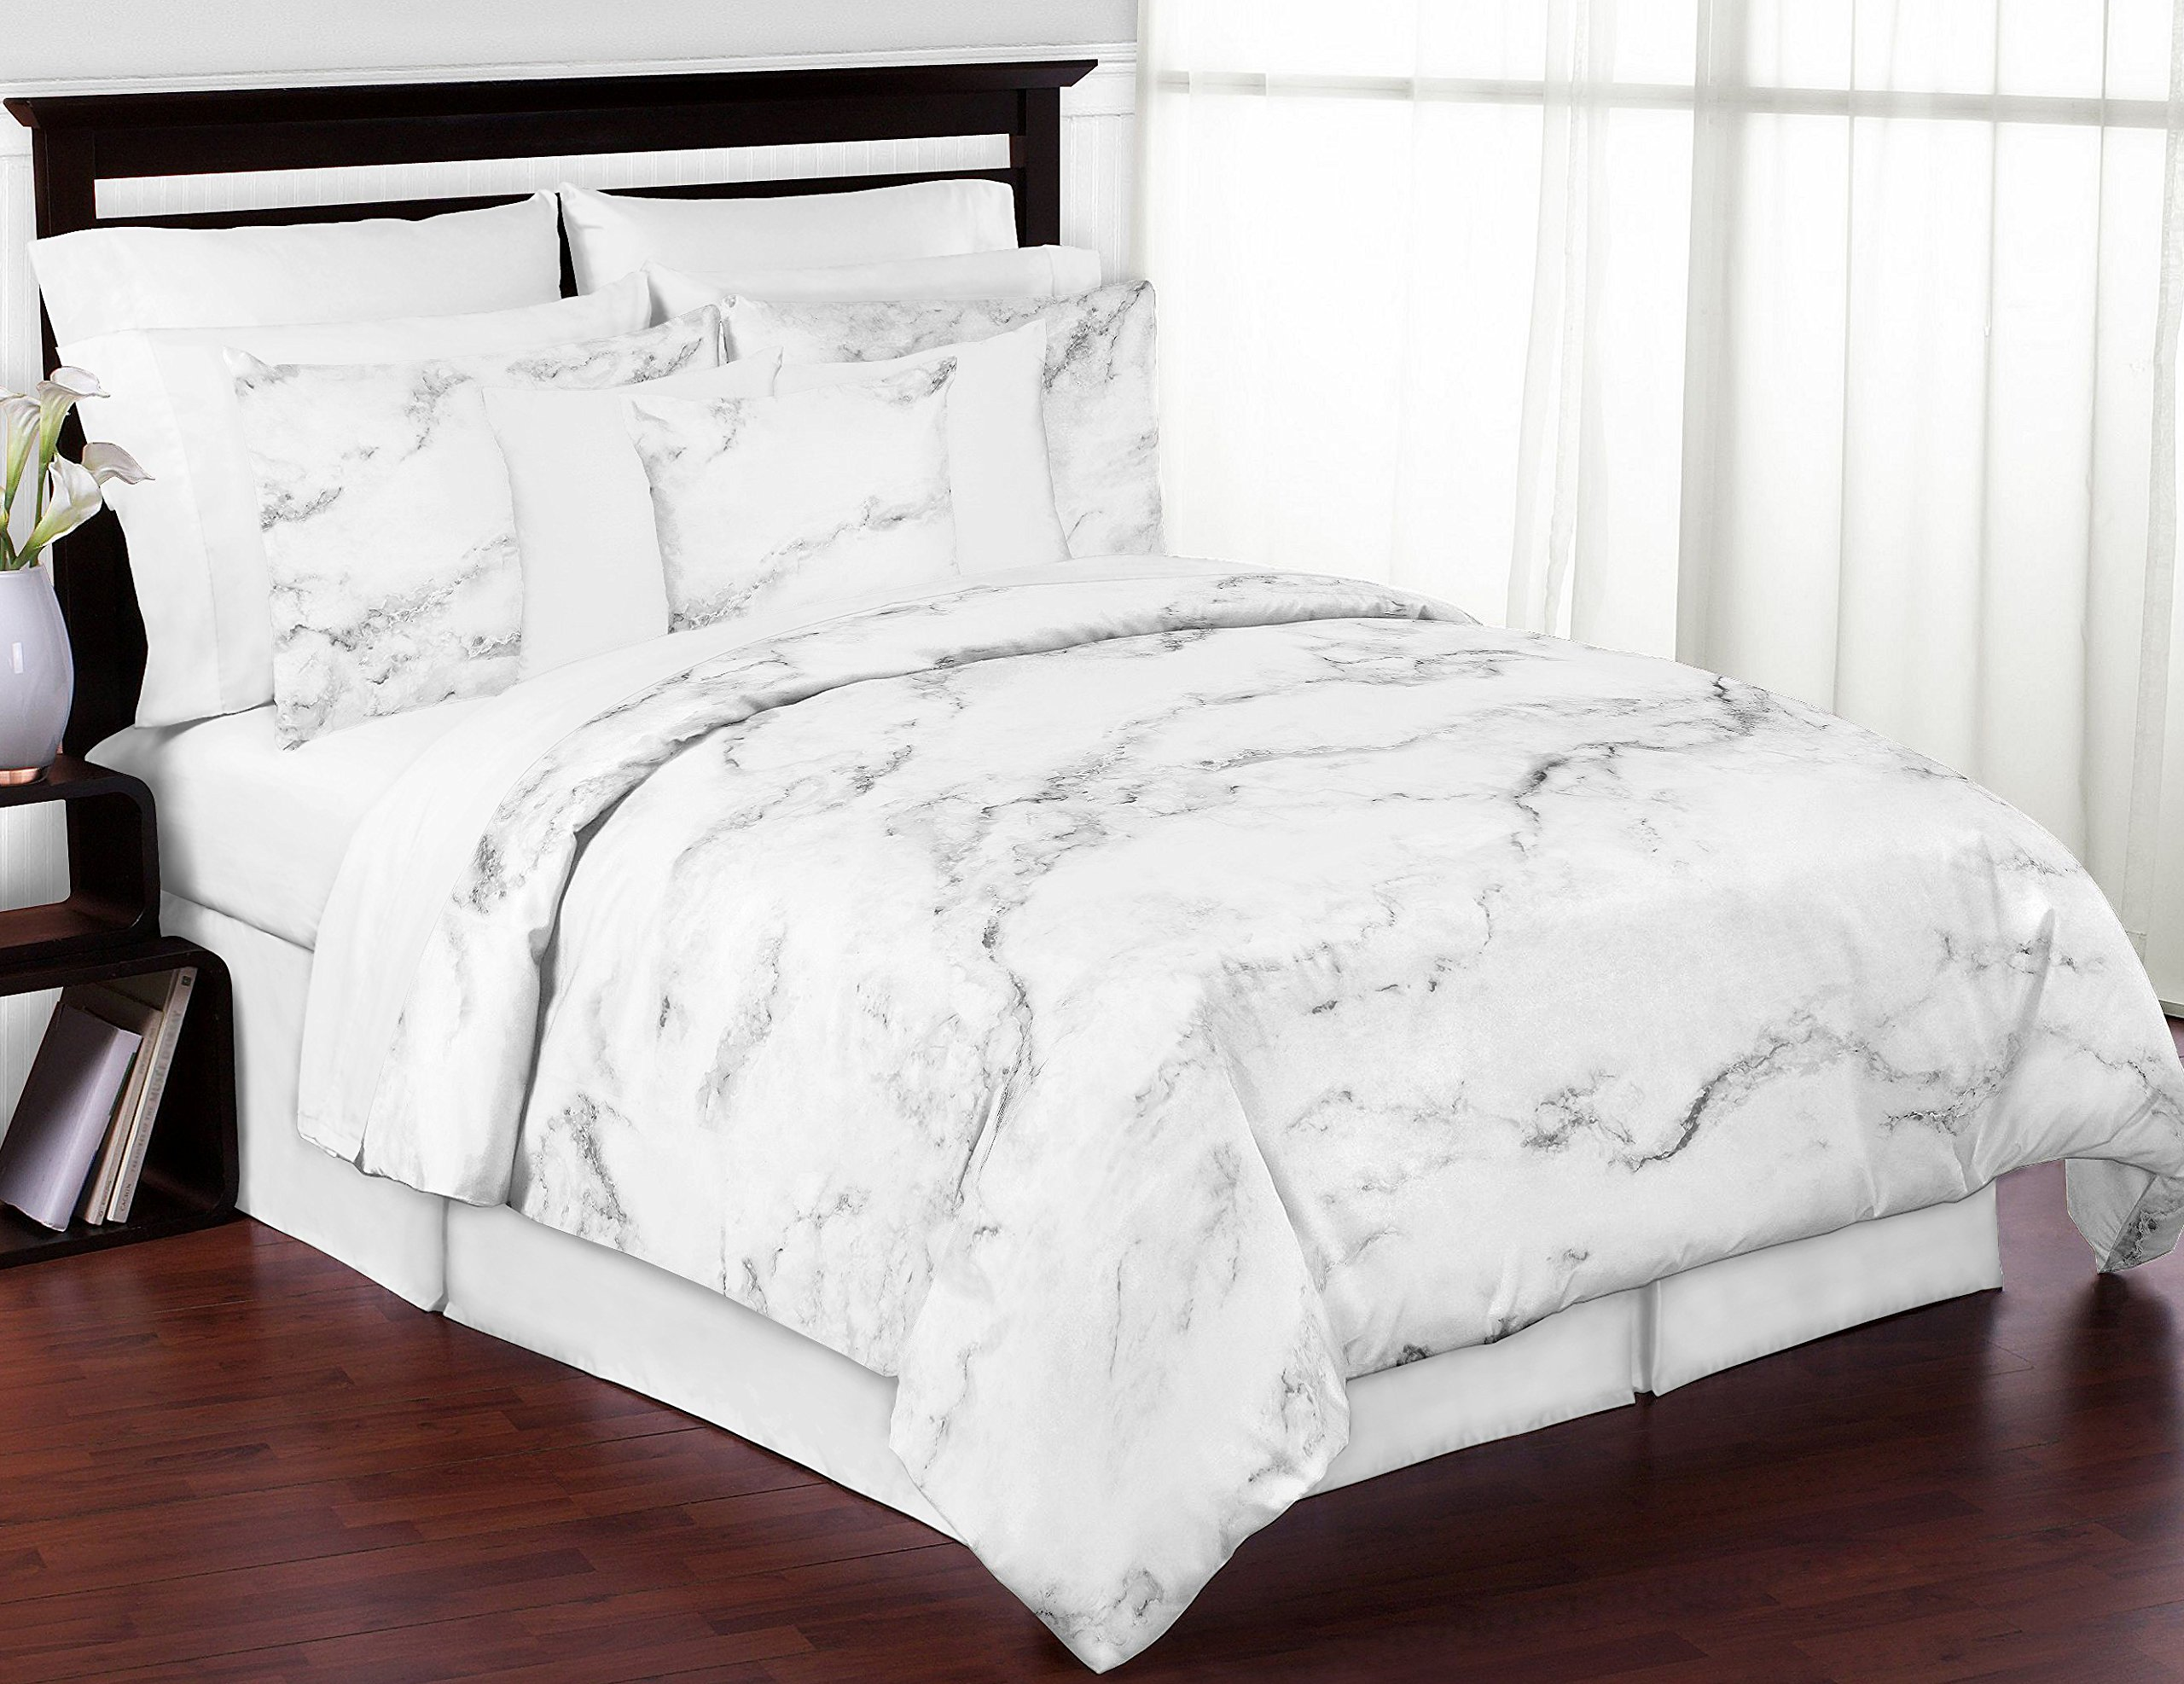 Modern Grey, Black and White Marble 3 Piece Full / Queen Bedding Set Collection